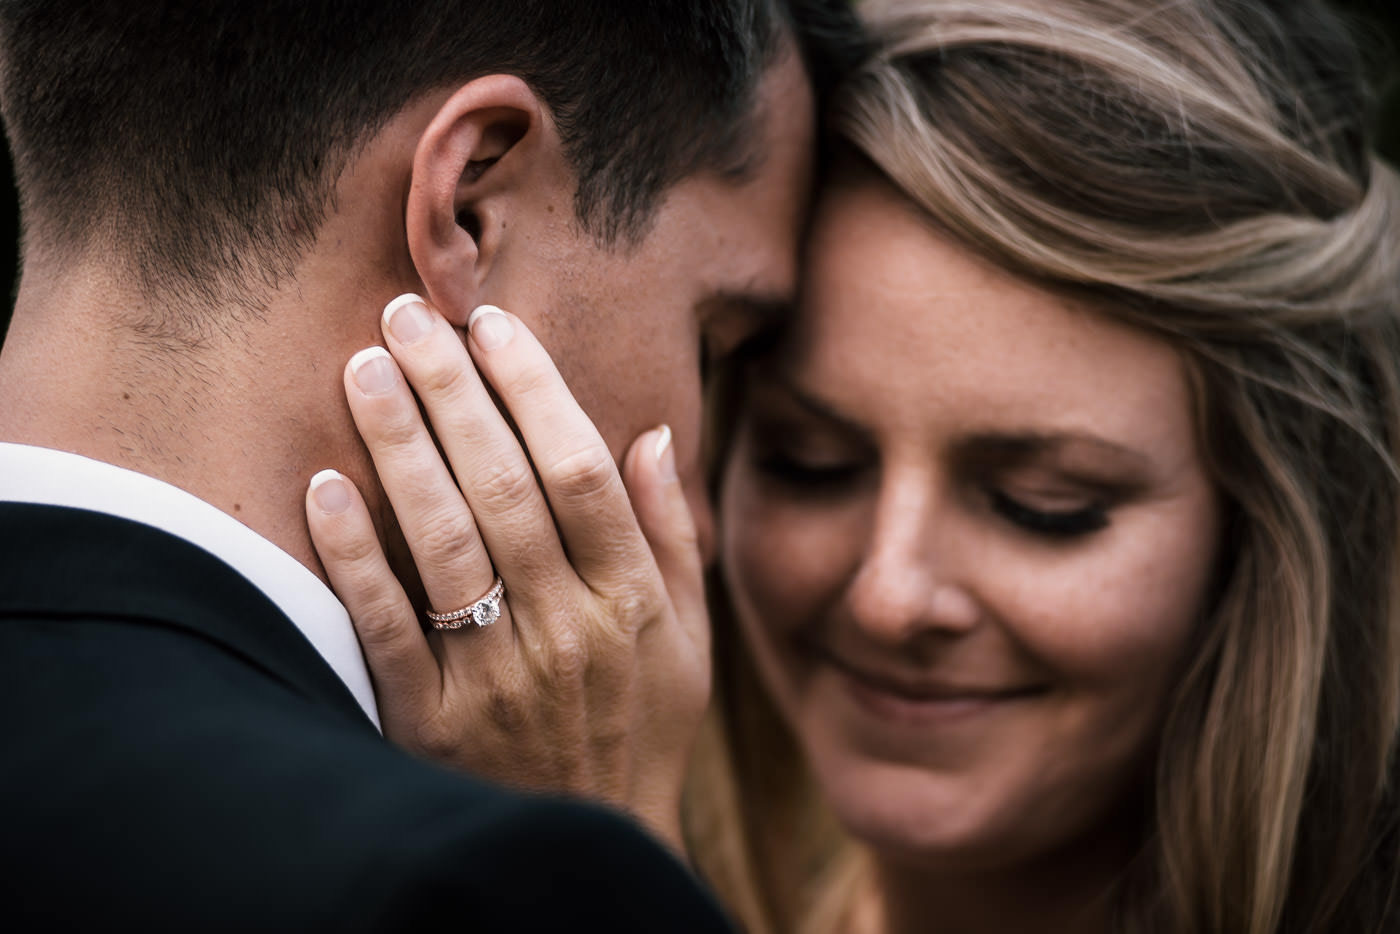 Bride places her hand tenderly on her husbands face and shows off her rings as the couple snuggles in close.